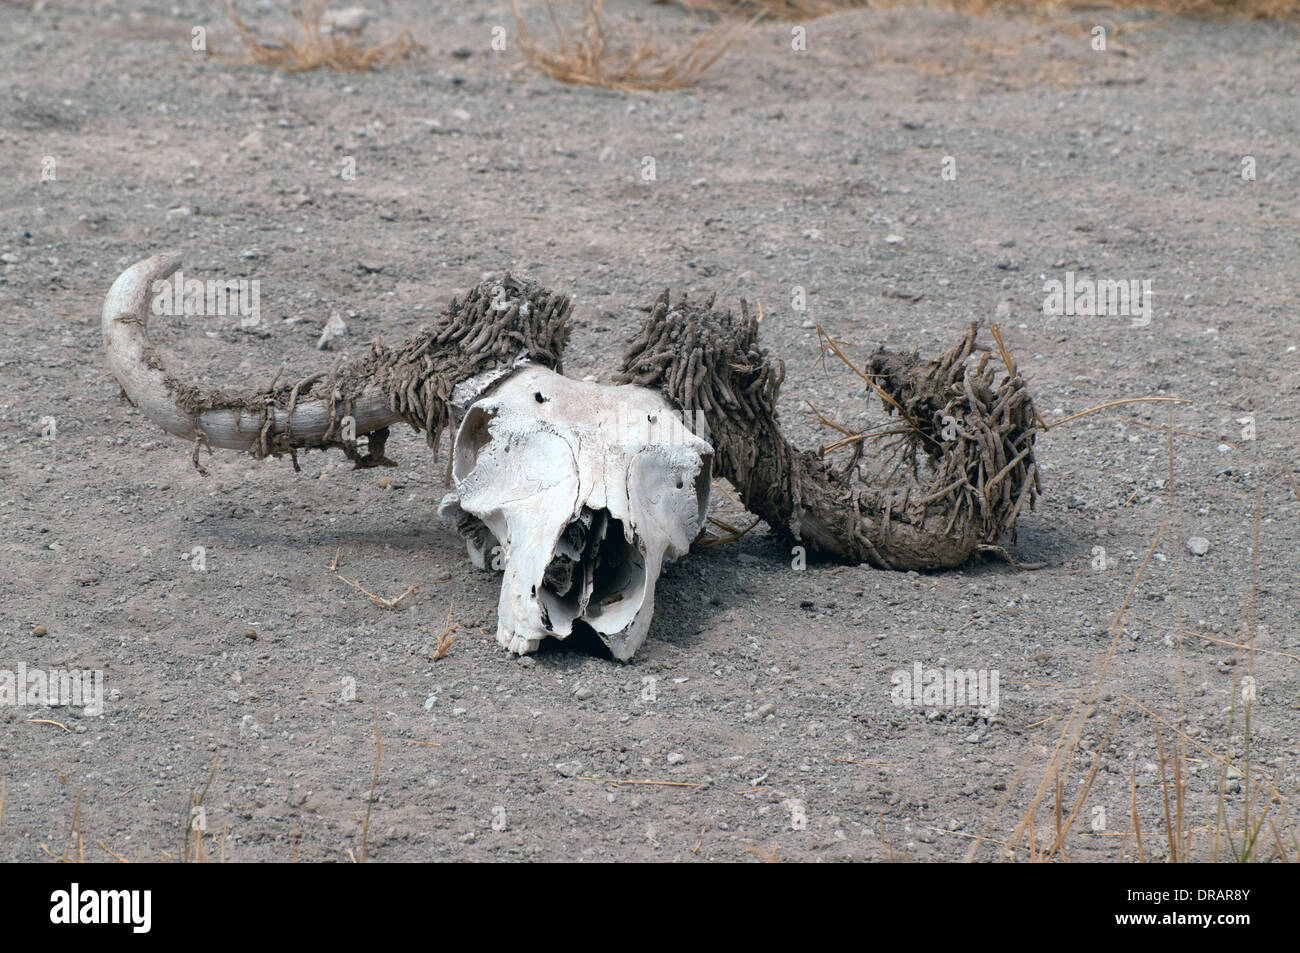 Buffalo skull with horns covered with horn moth towers in keratin sheath of horn Amboseli National Park Kenya East Africa - Stock Image